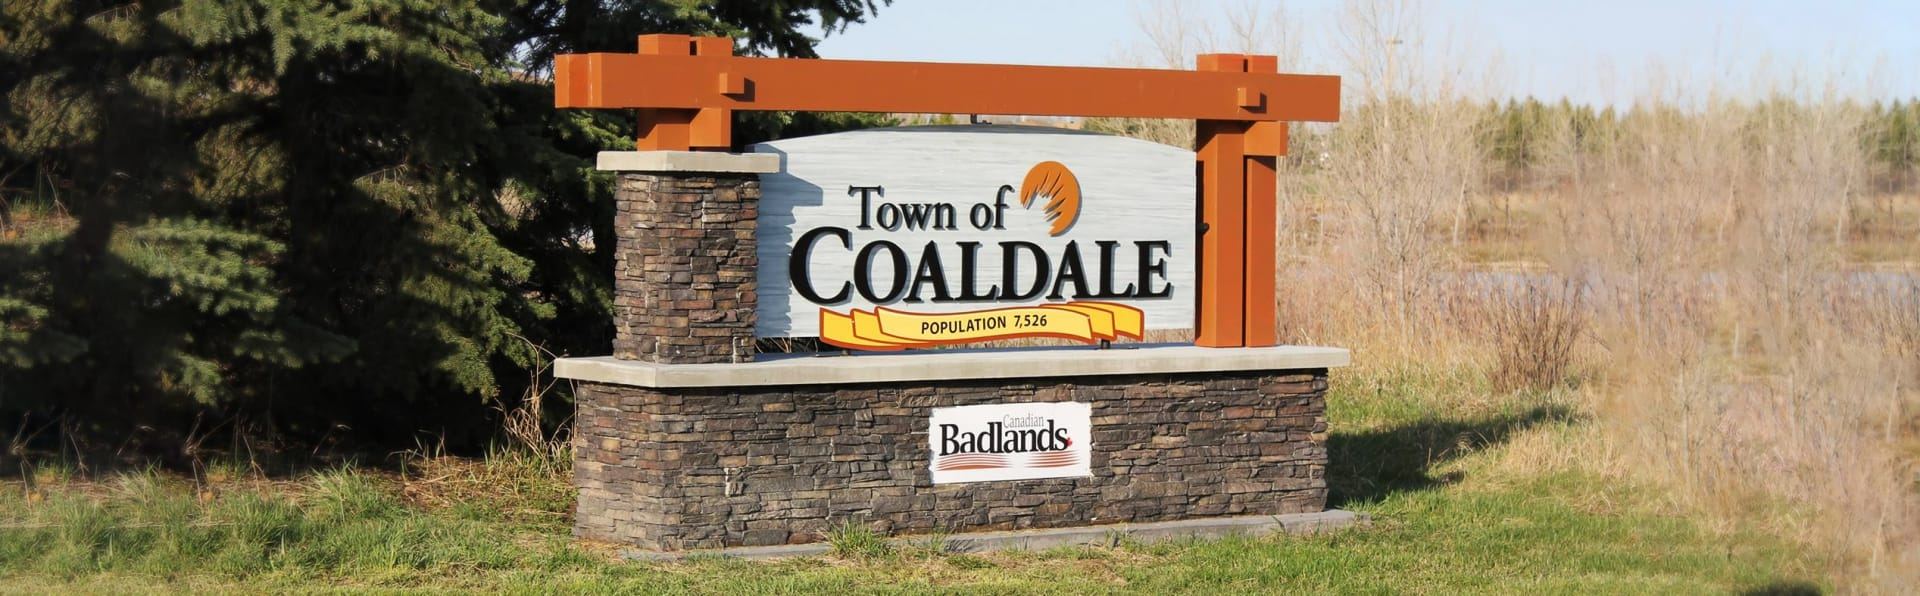 Town of Coaldale sign.